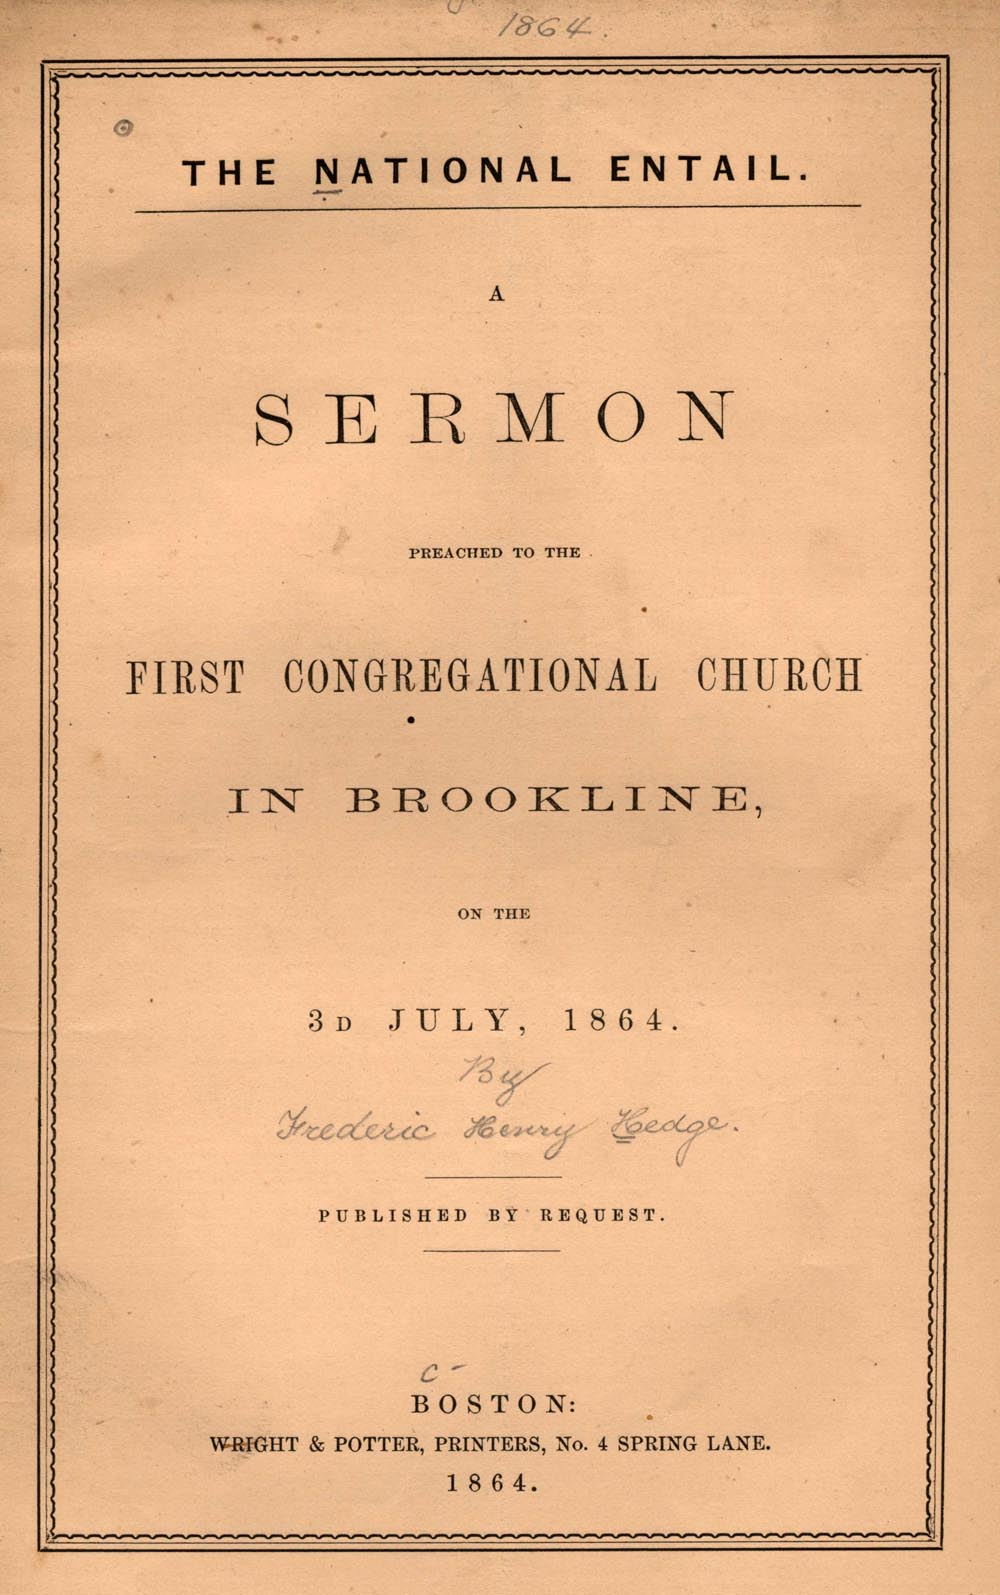 Cover of pamphlet sermon by Frederic Henry Hedge, The National Entail